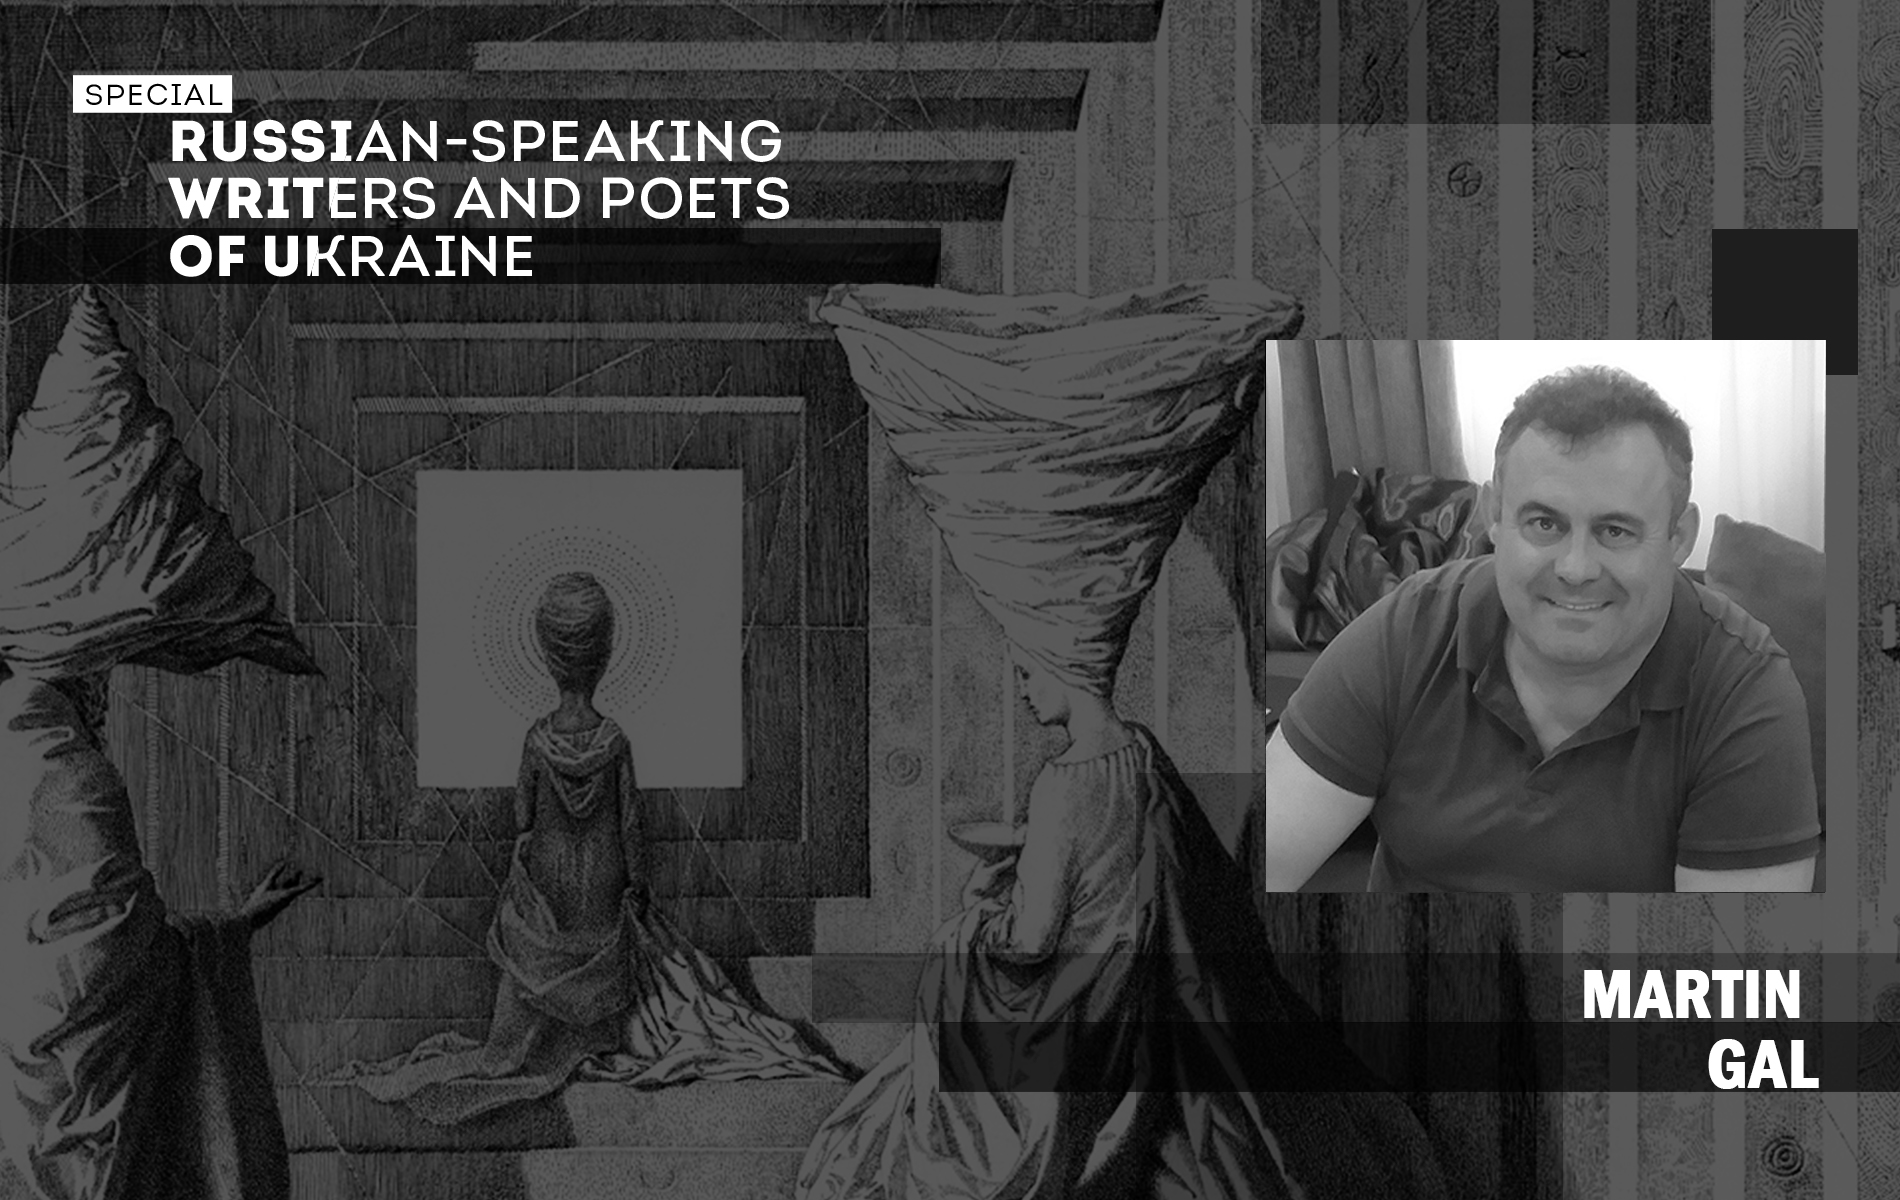 RUSSIAN-SPEAKING WRITERS AND POETS OF UKRAINE: the creative dossier of Martin Gal